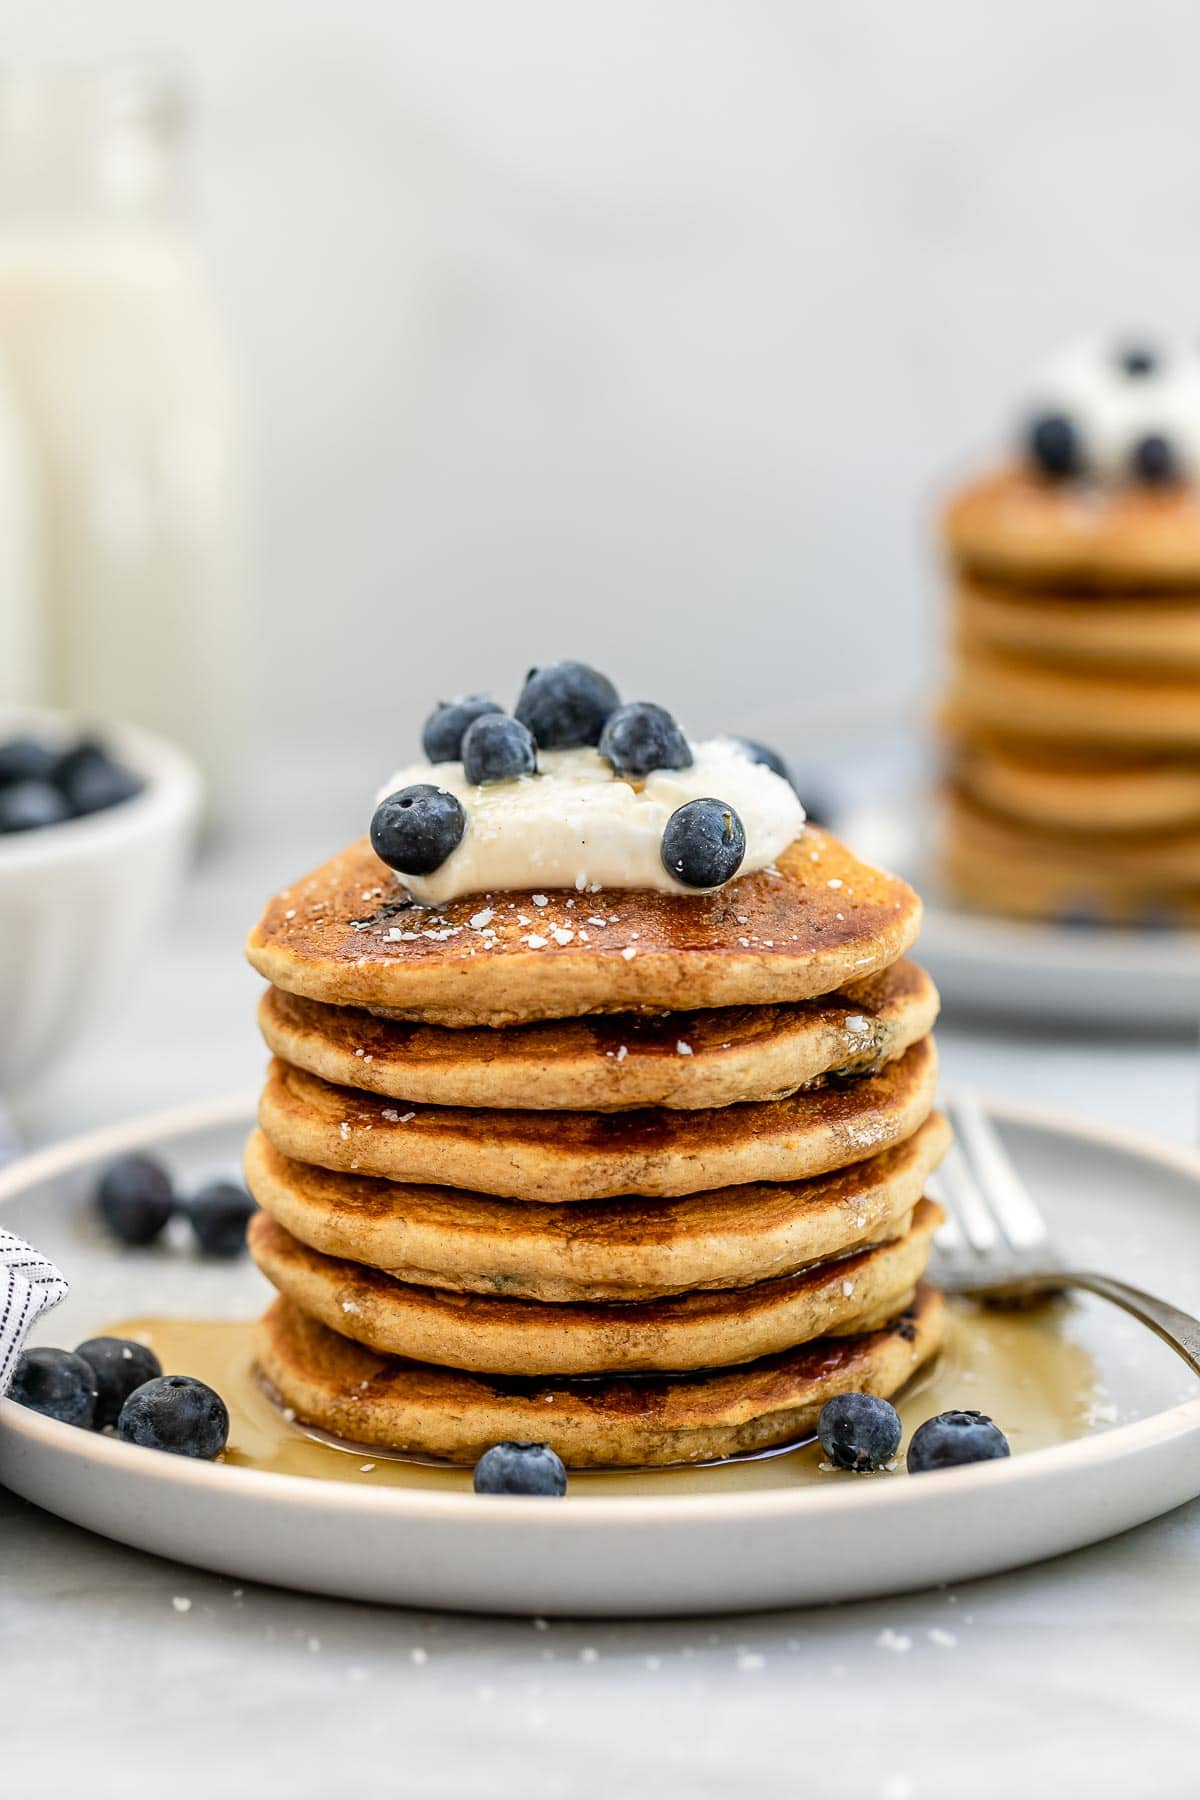 Six vegan blueberry pancakes stacked on each other with yogurt on top.